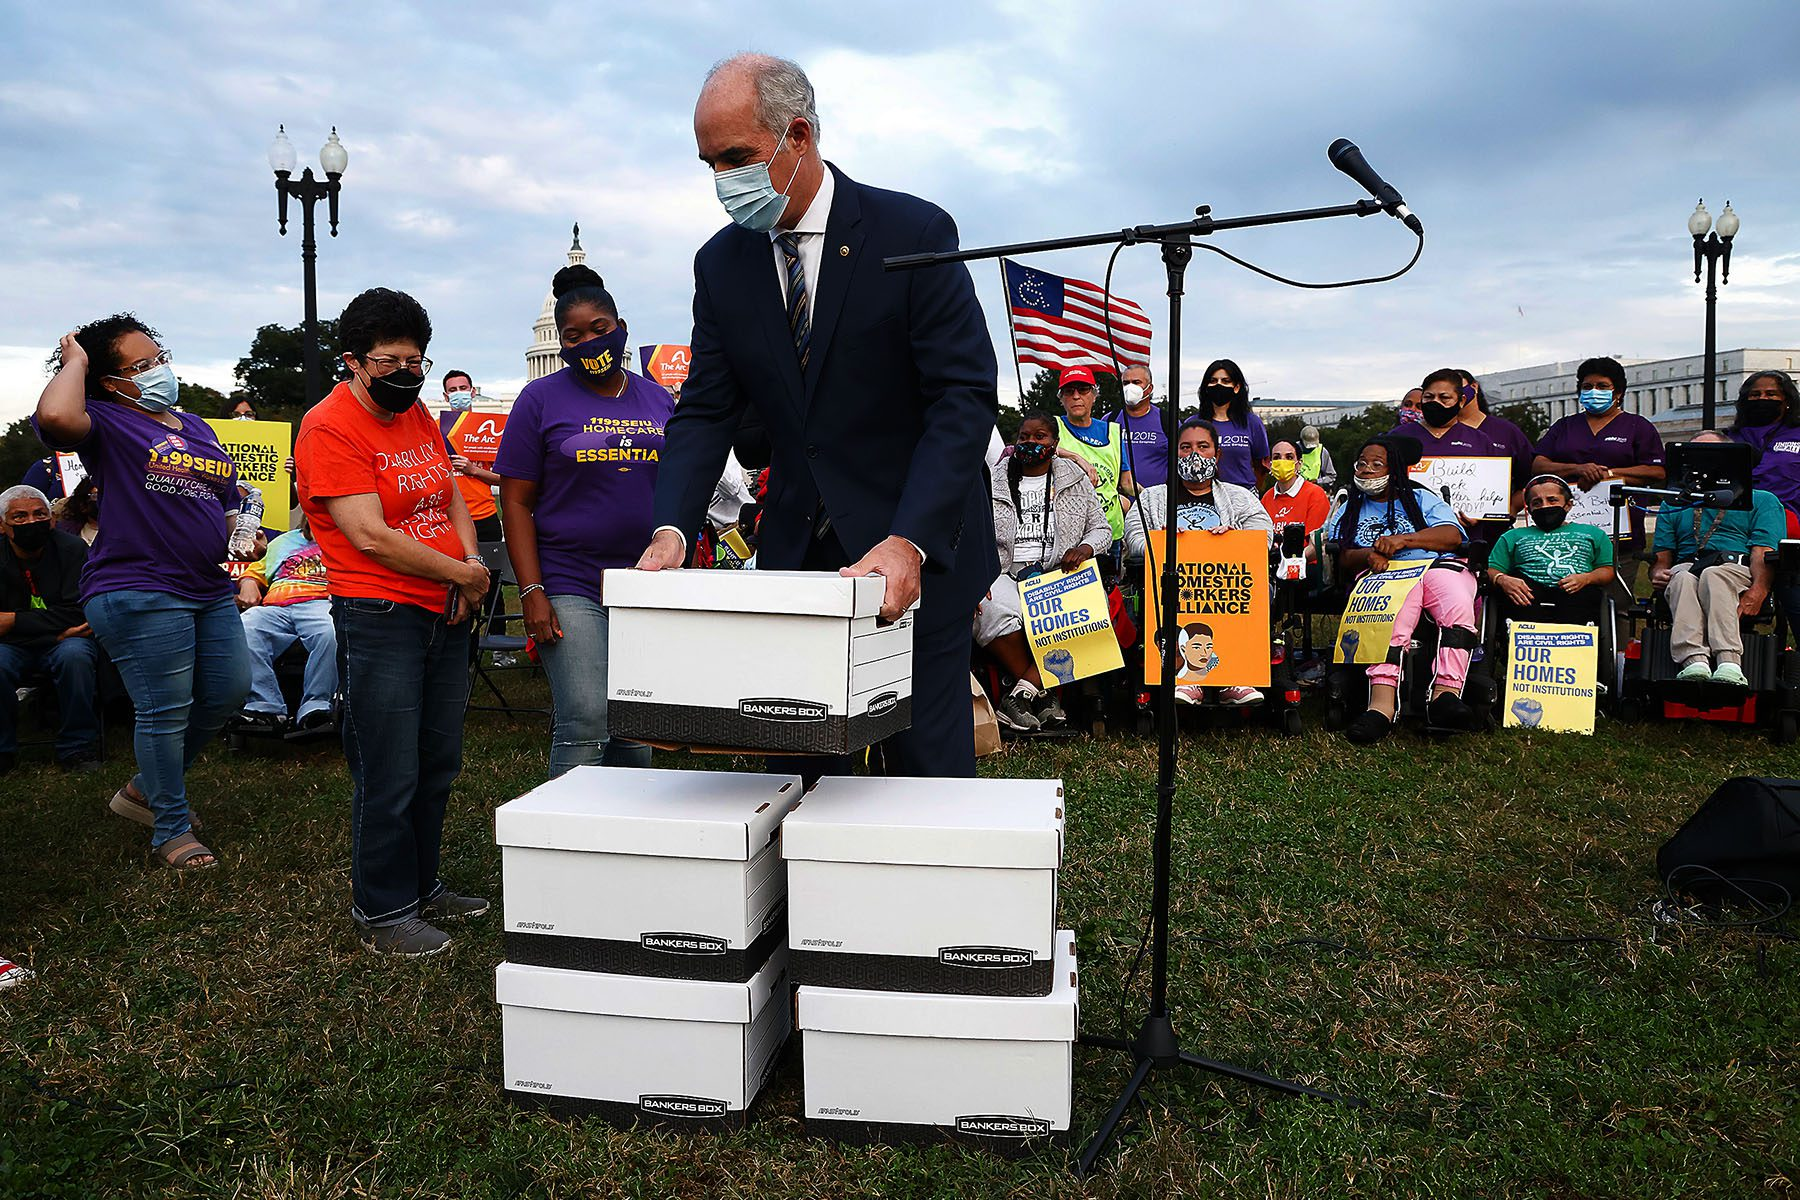 Bob Casey lifts a large white cardboard box while activists watch all around him. The Capitol building is seen in the background.